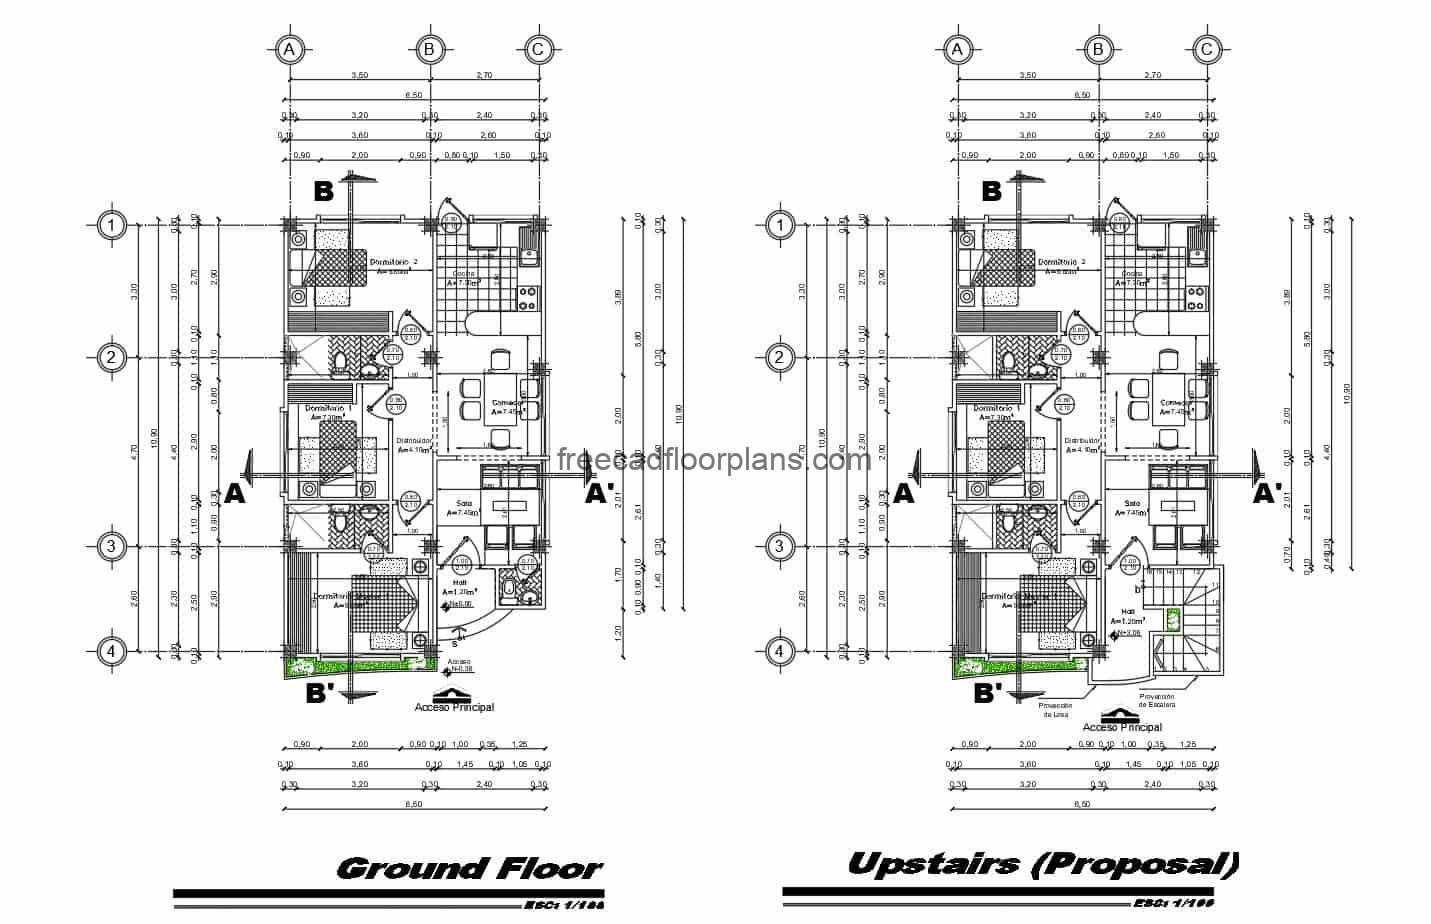 2D DWG Plans of Two Level Residence Individual houses of autocad, each residence has three bedrooms in simple distribution, living room, kitchen and dining room, with two and a half bathrooms. Basic and simple distribution, plans for free download in Autocad DWG format.